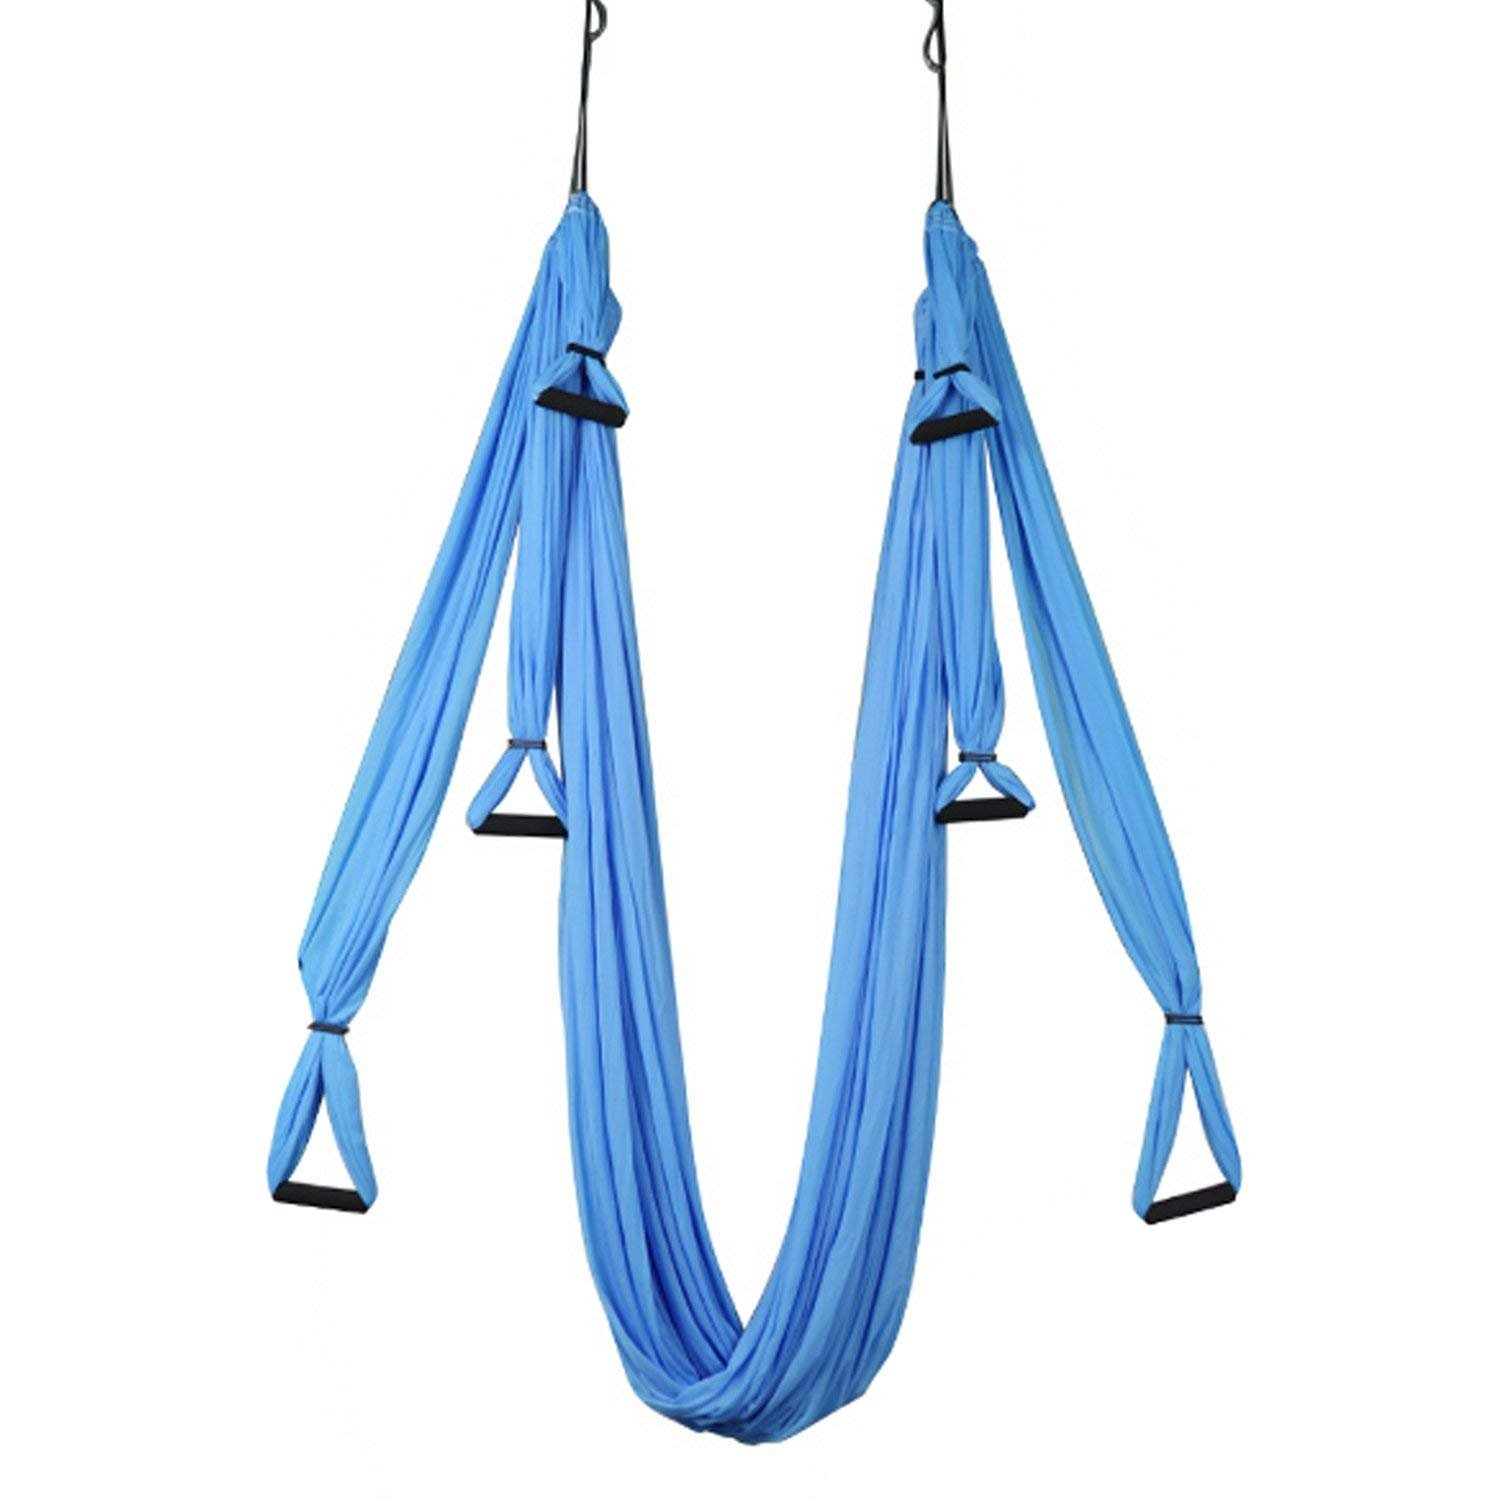 Tong shop Antenne Yoga Swing Ultra Strong Antigravity Yoga Trapeze antigravitation Air Flying Yoga Hängematte Sling Gürtel Elastic für Yoga Inversion Fitness